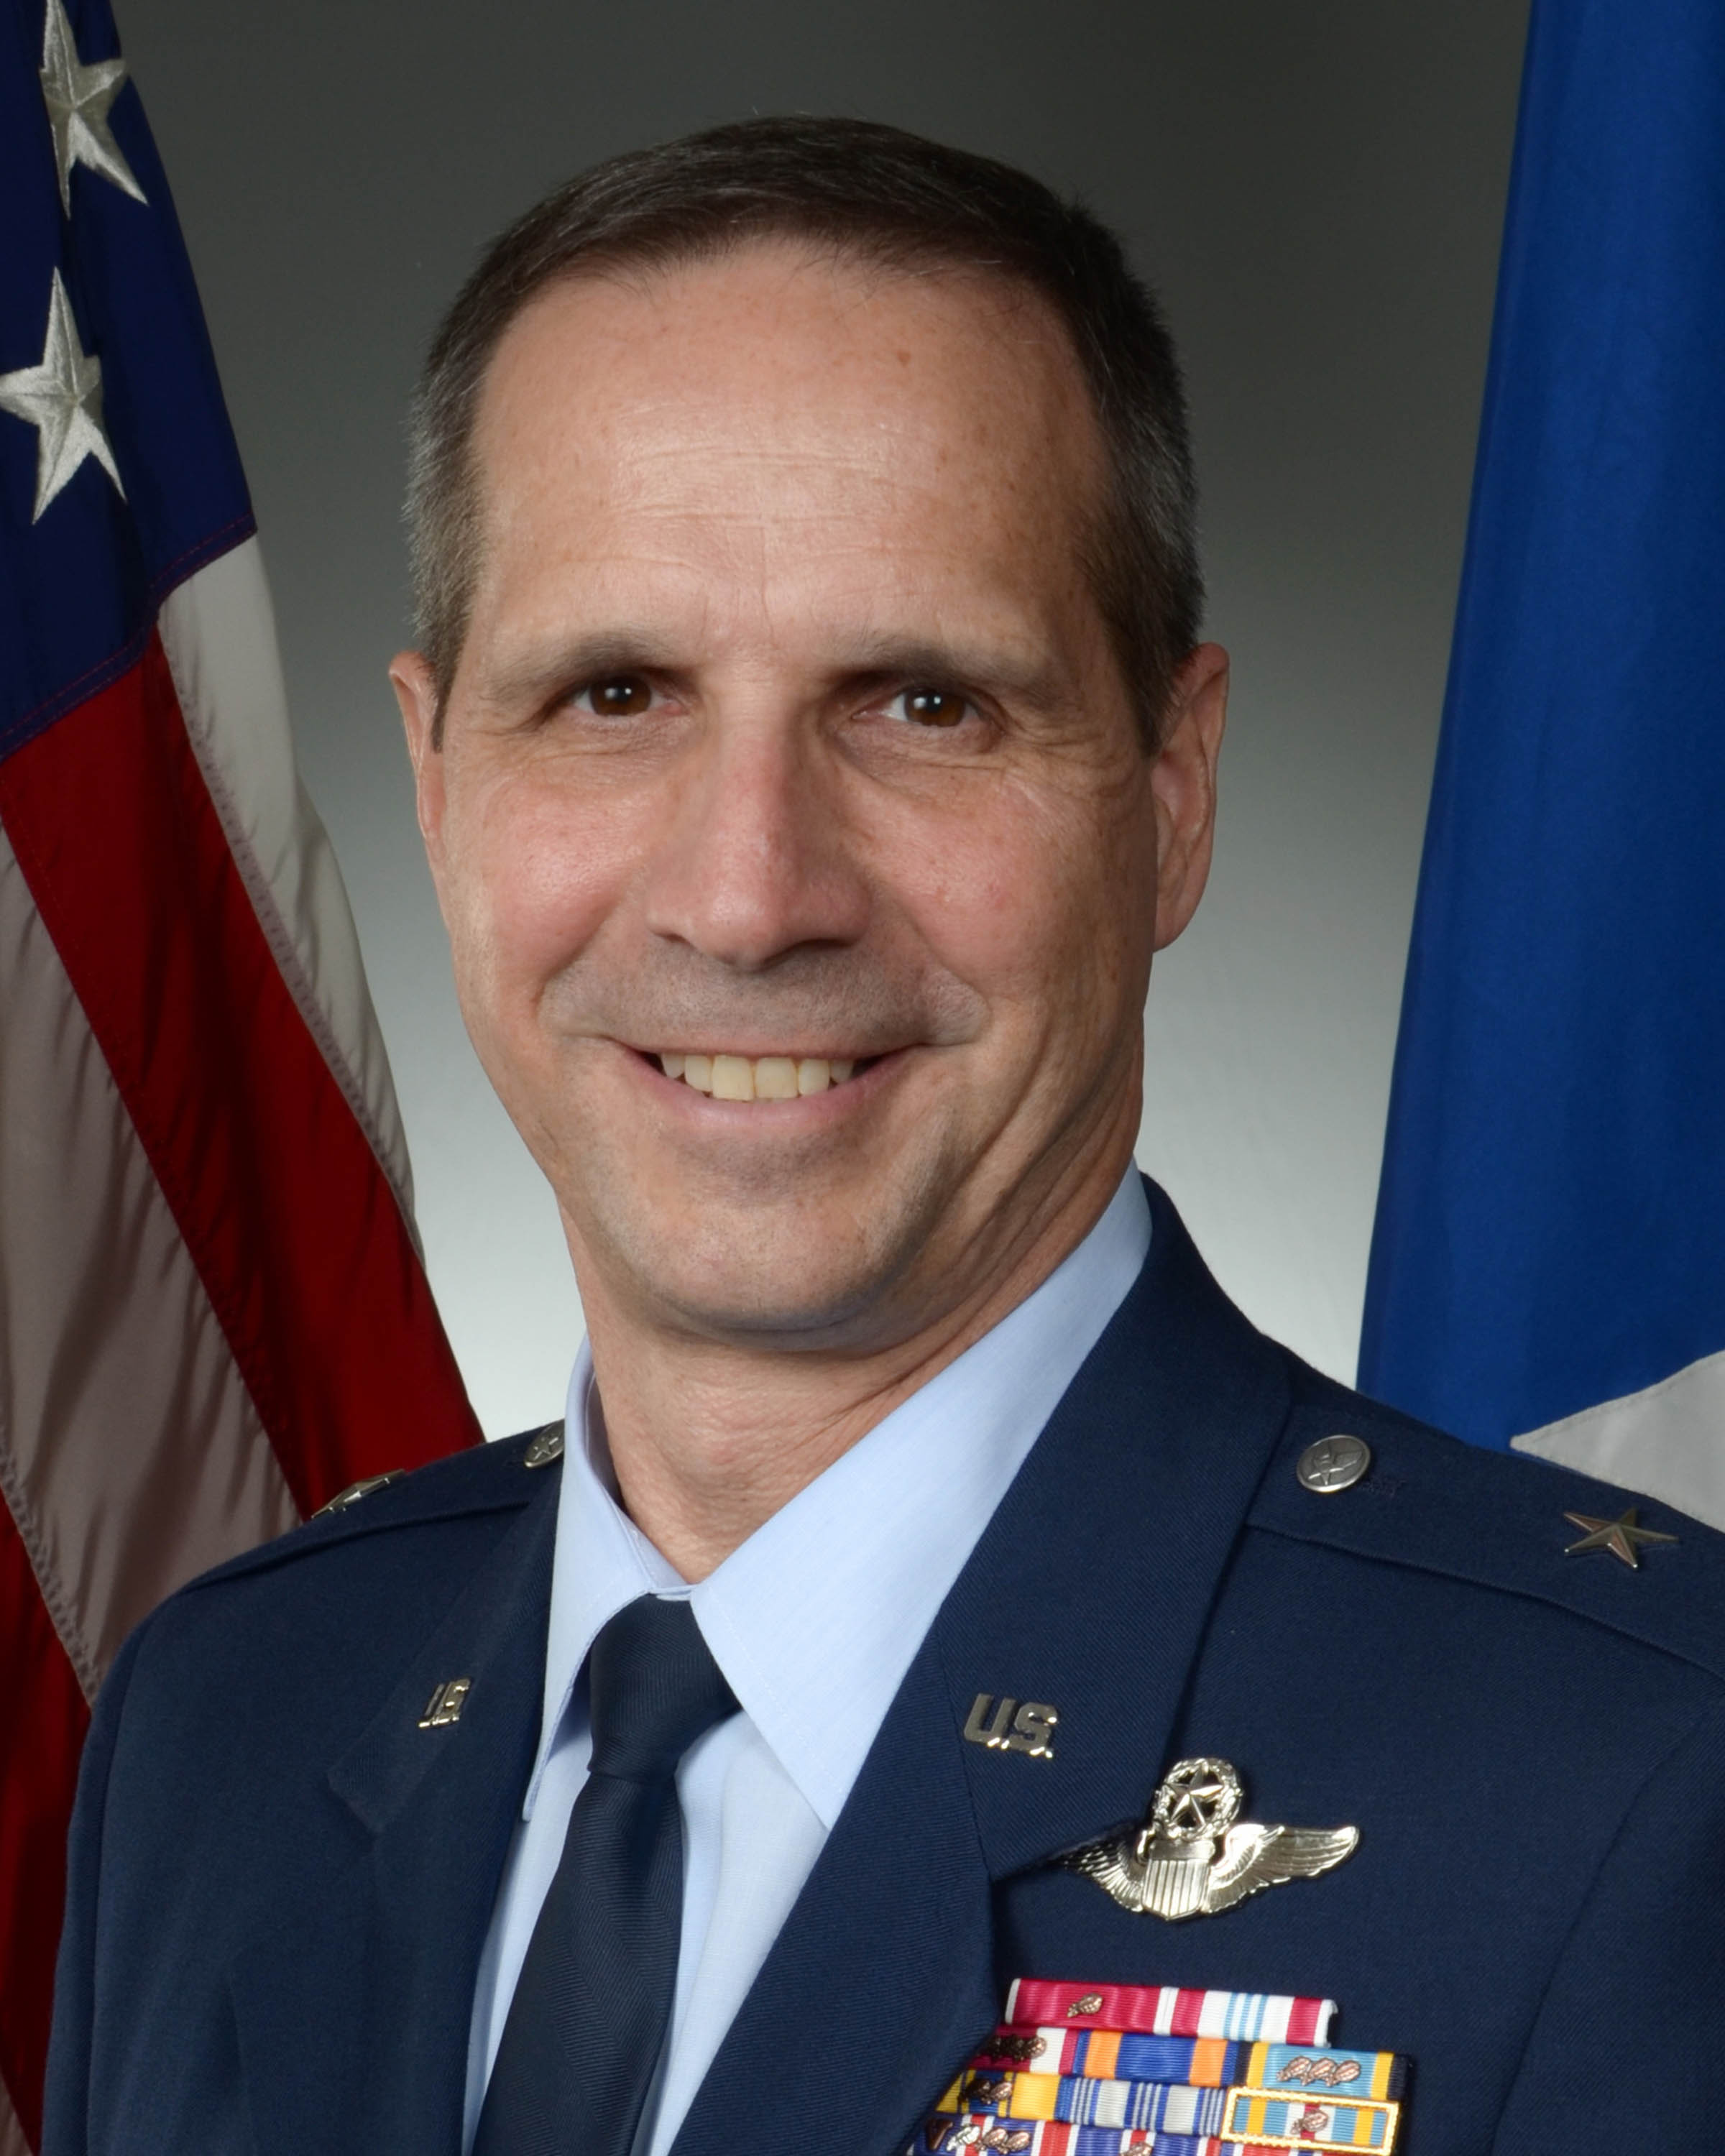 Image of 4th Air Force Commander which links to biography page